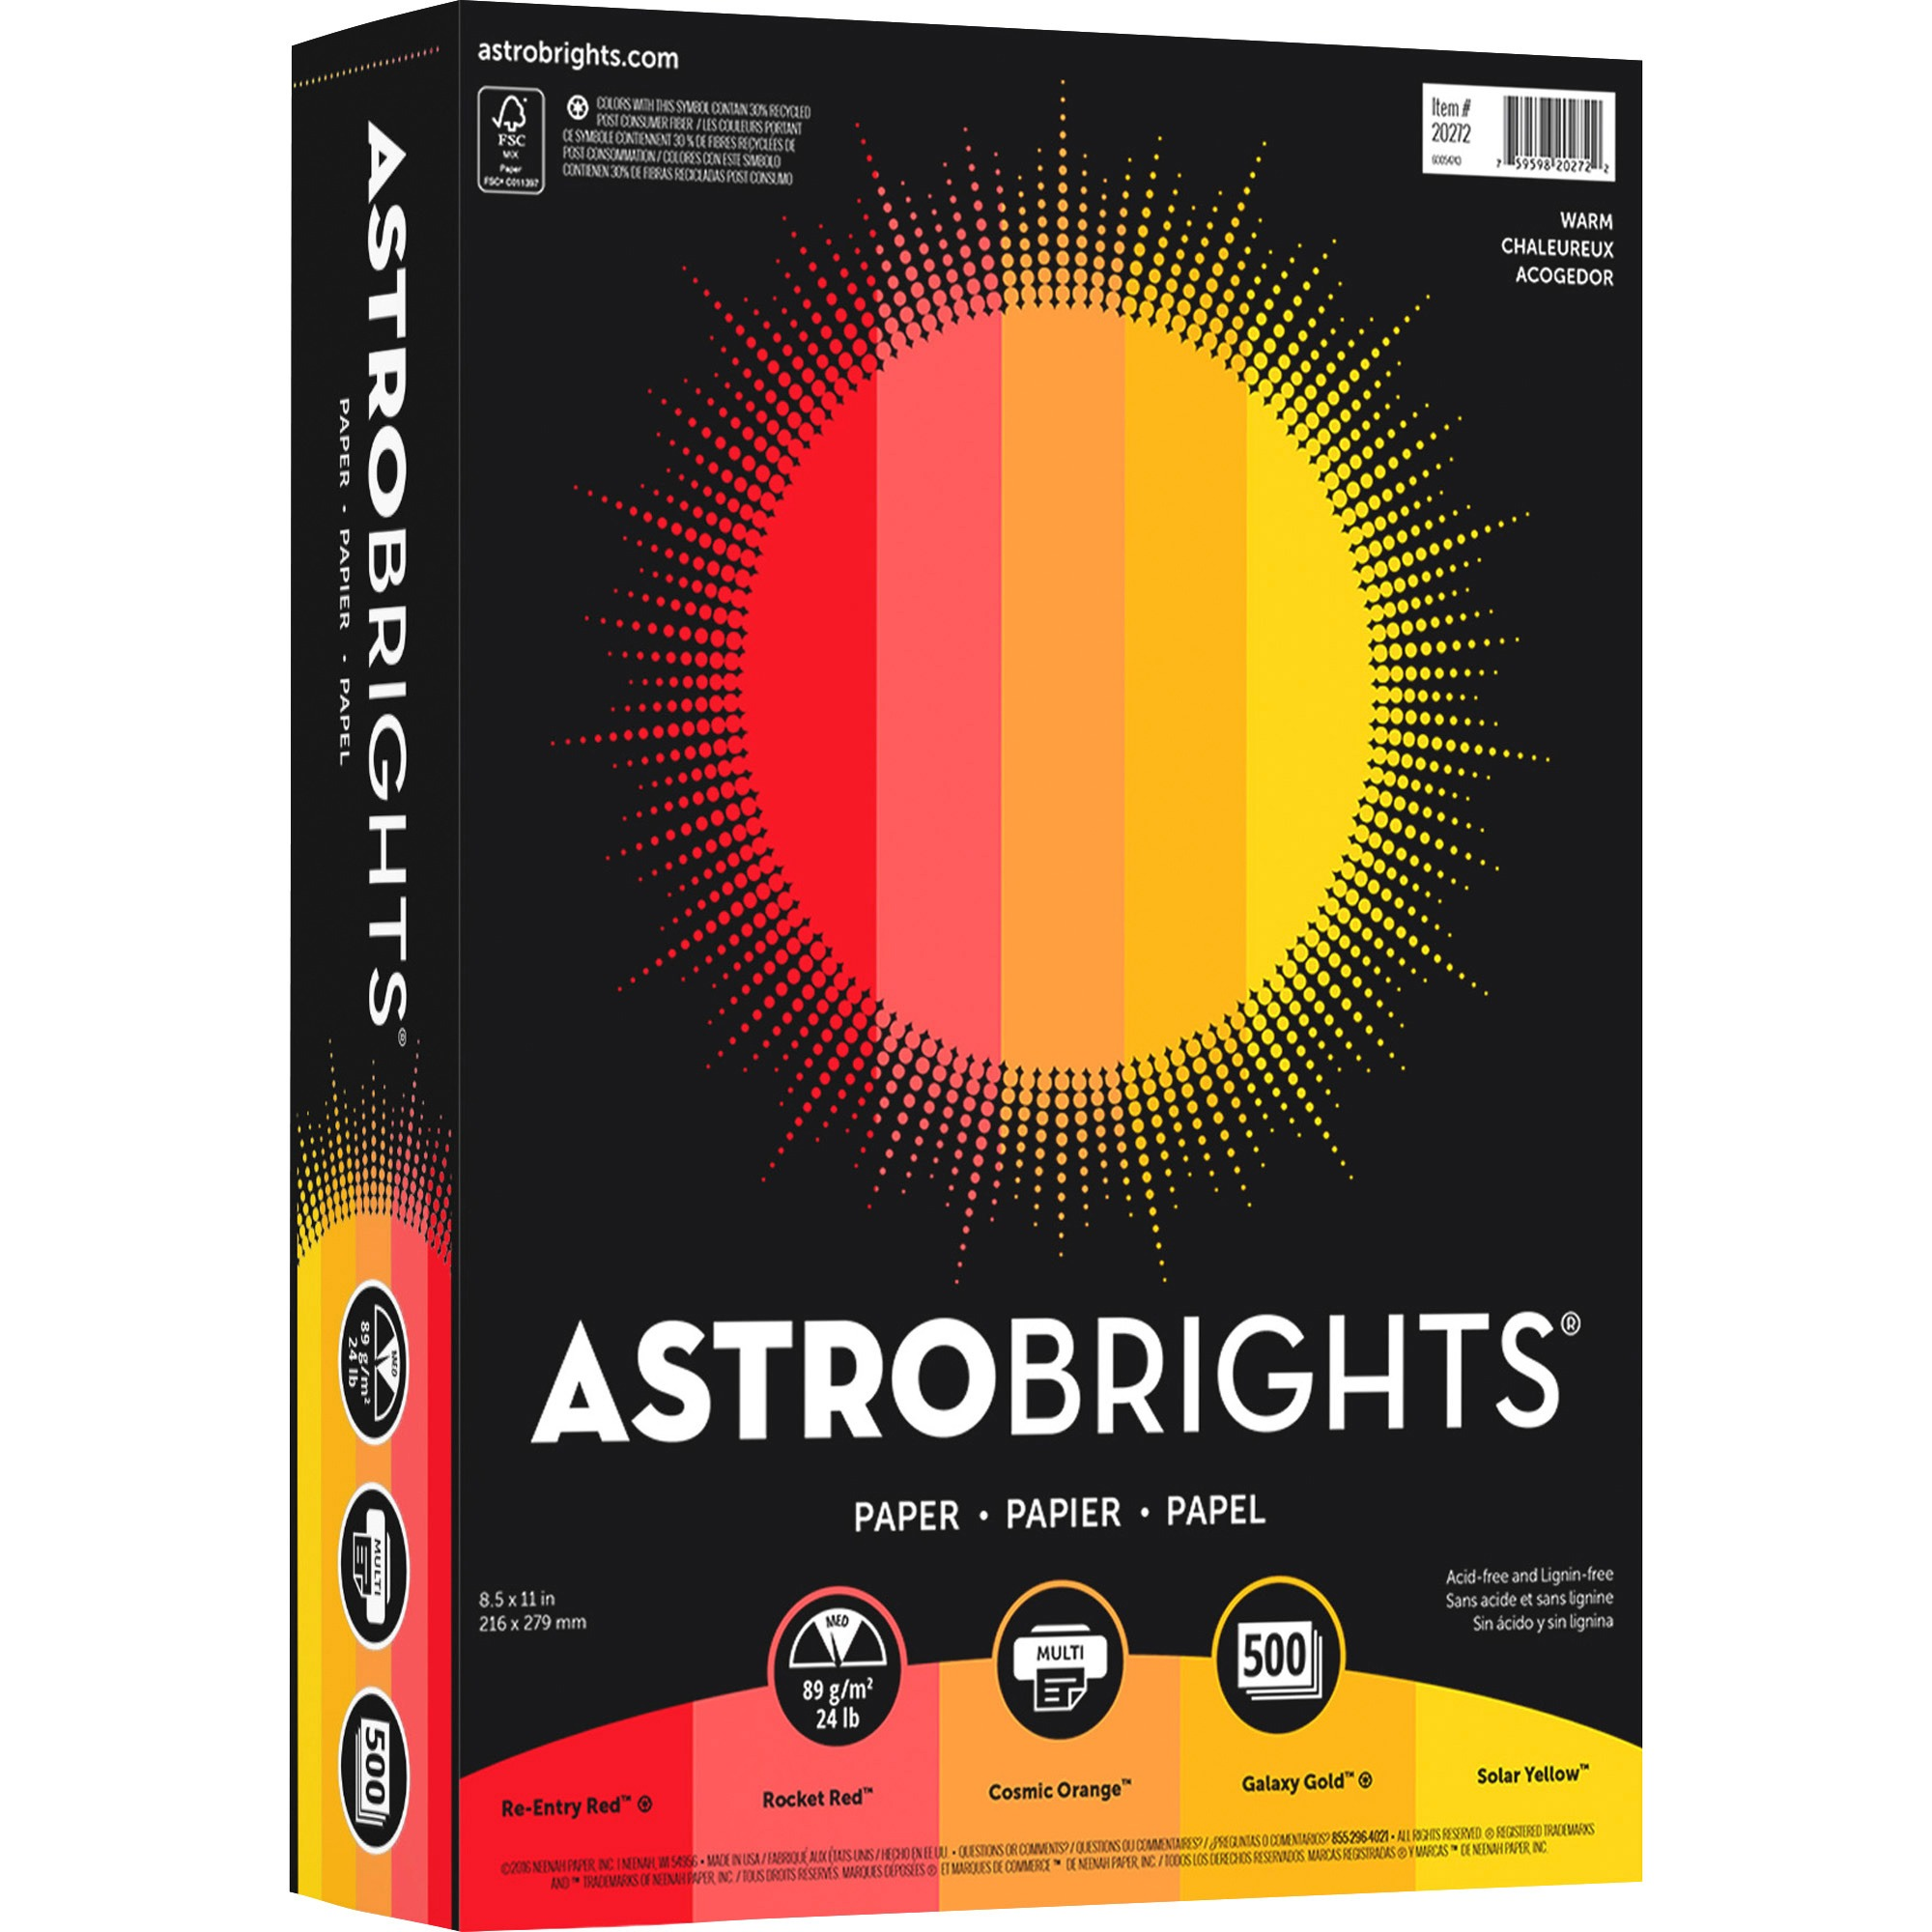 "Astrobrights, WAU20272, Color Paper - ""Warm"" 5-Color Assortment, 500 / Ream, Rocket Red,Re-entry Red,Cosmic Orange,Galaxy Gold,Solar Yellow"